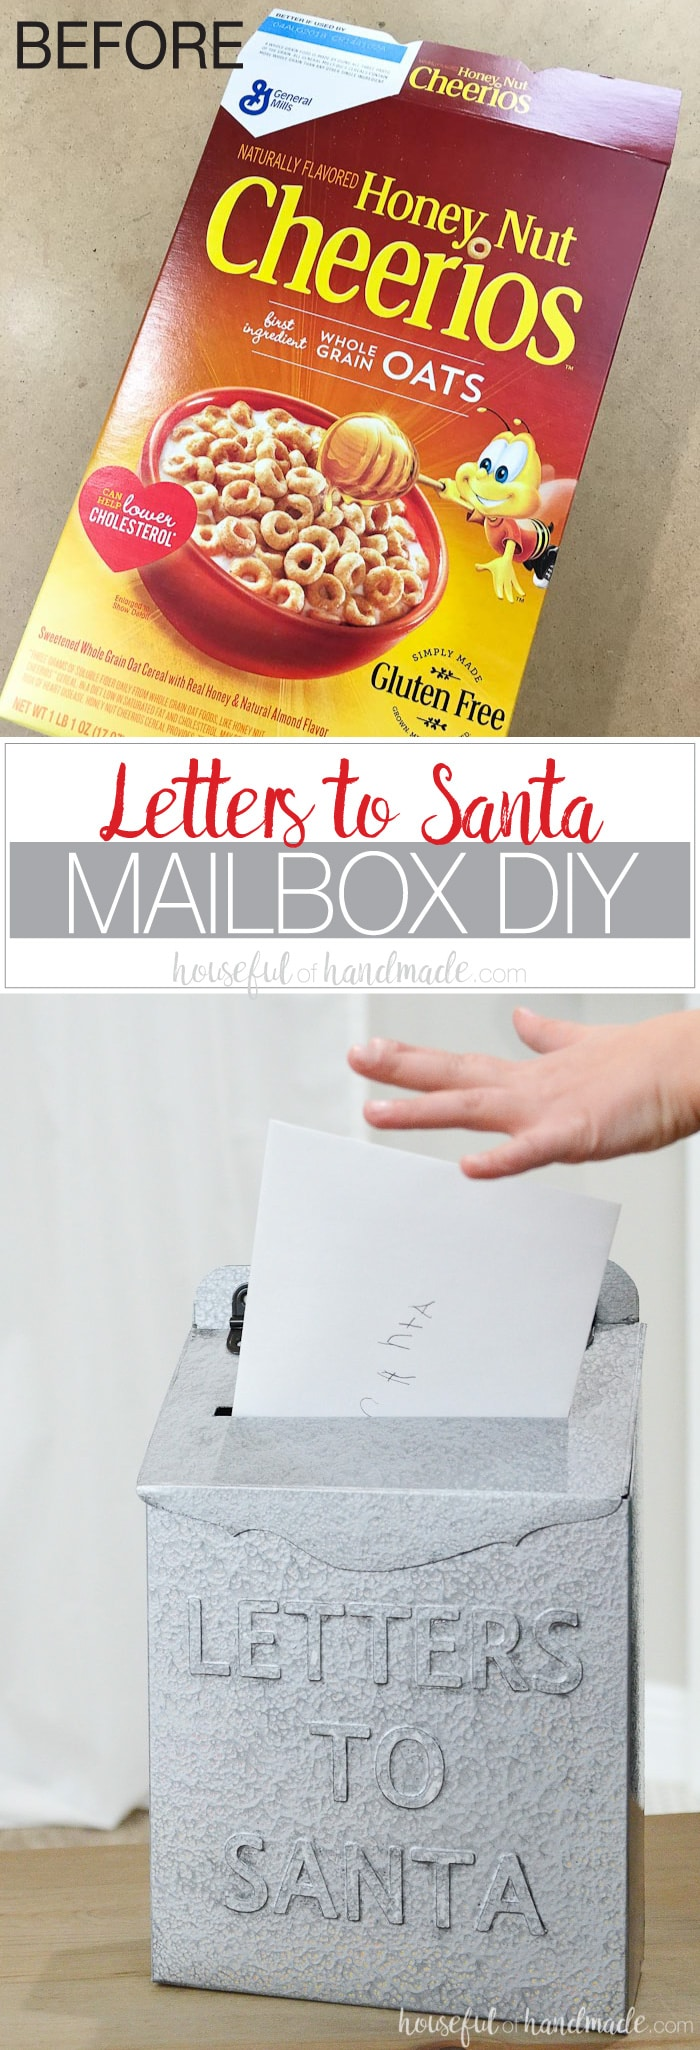 Create a faux metal Letters to Santa mailbox for Christmas with this amazing upcycle. Inspired by the Hearth & Hand line, turn an empty cereal box into a vintage Christmas mailbox. Perfect budget Christmas decor idea! Housefulofhandmade.com